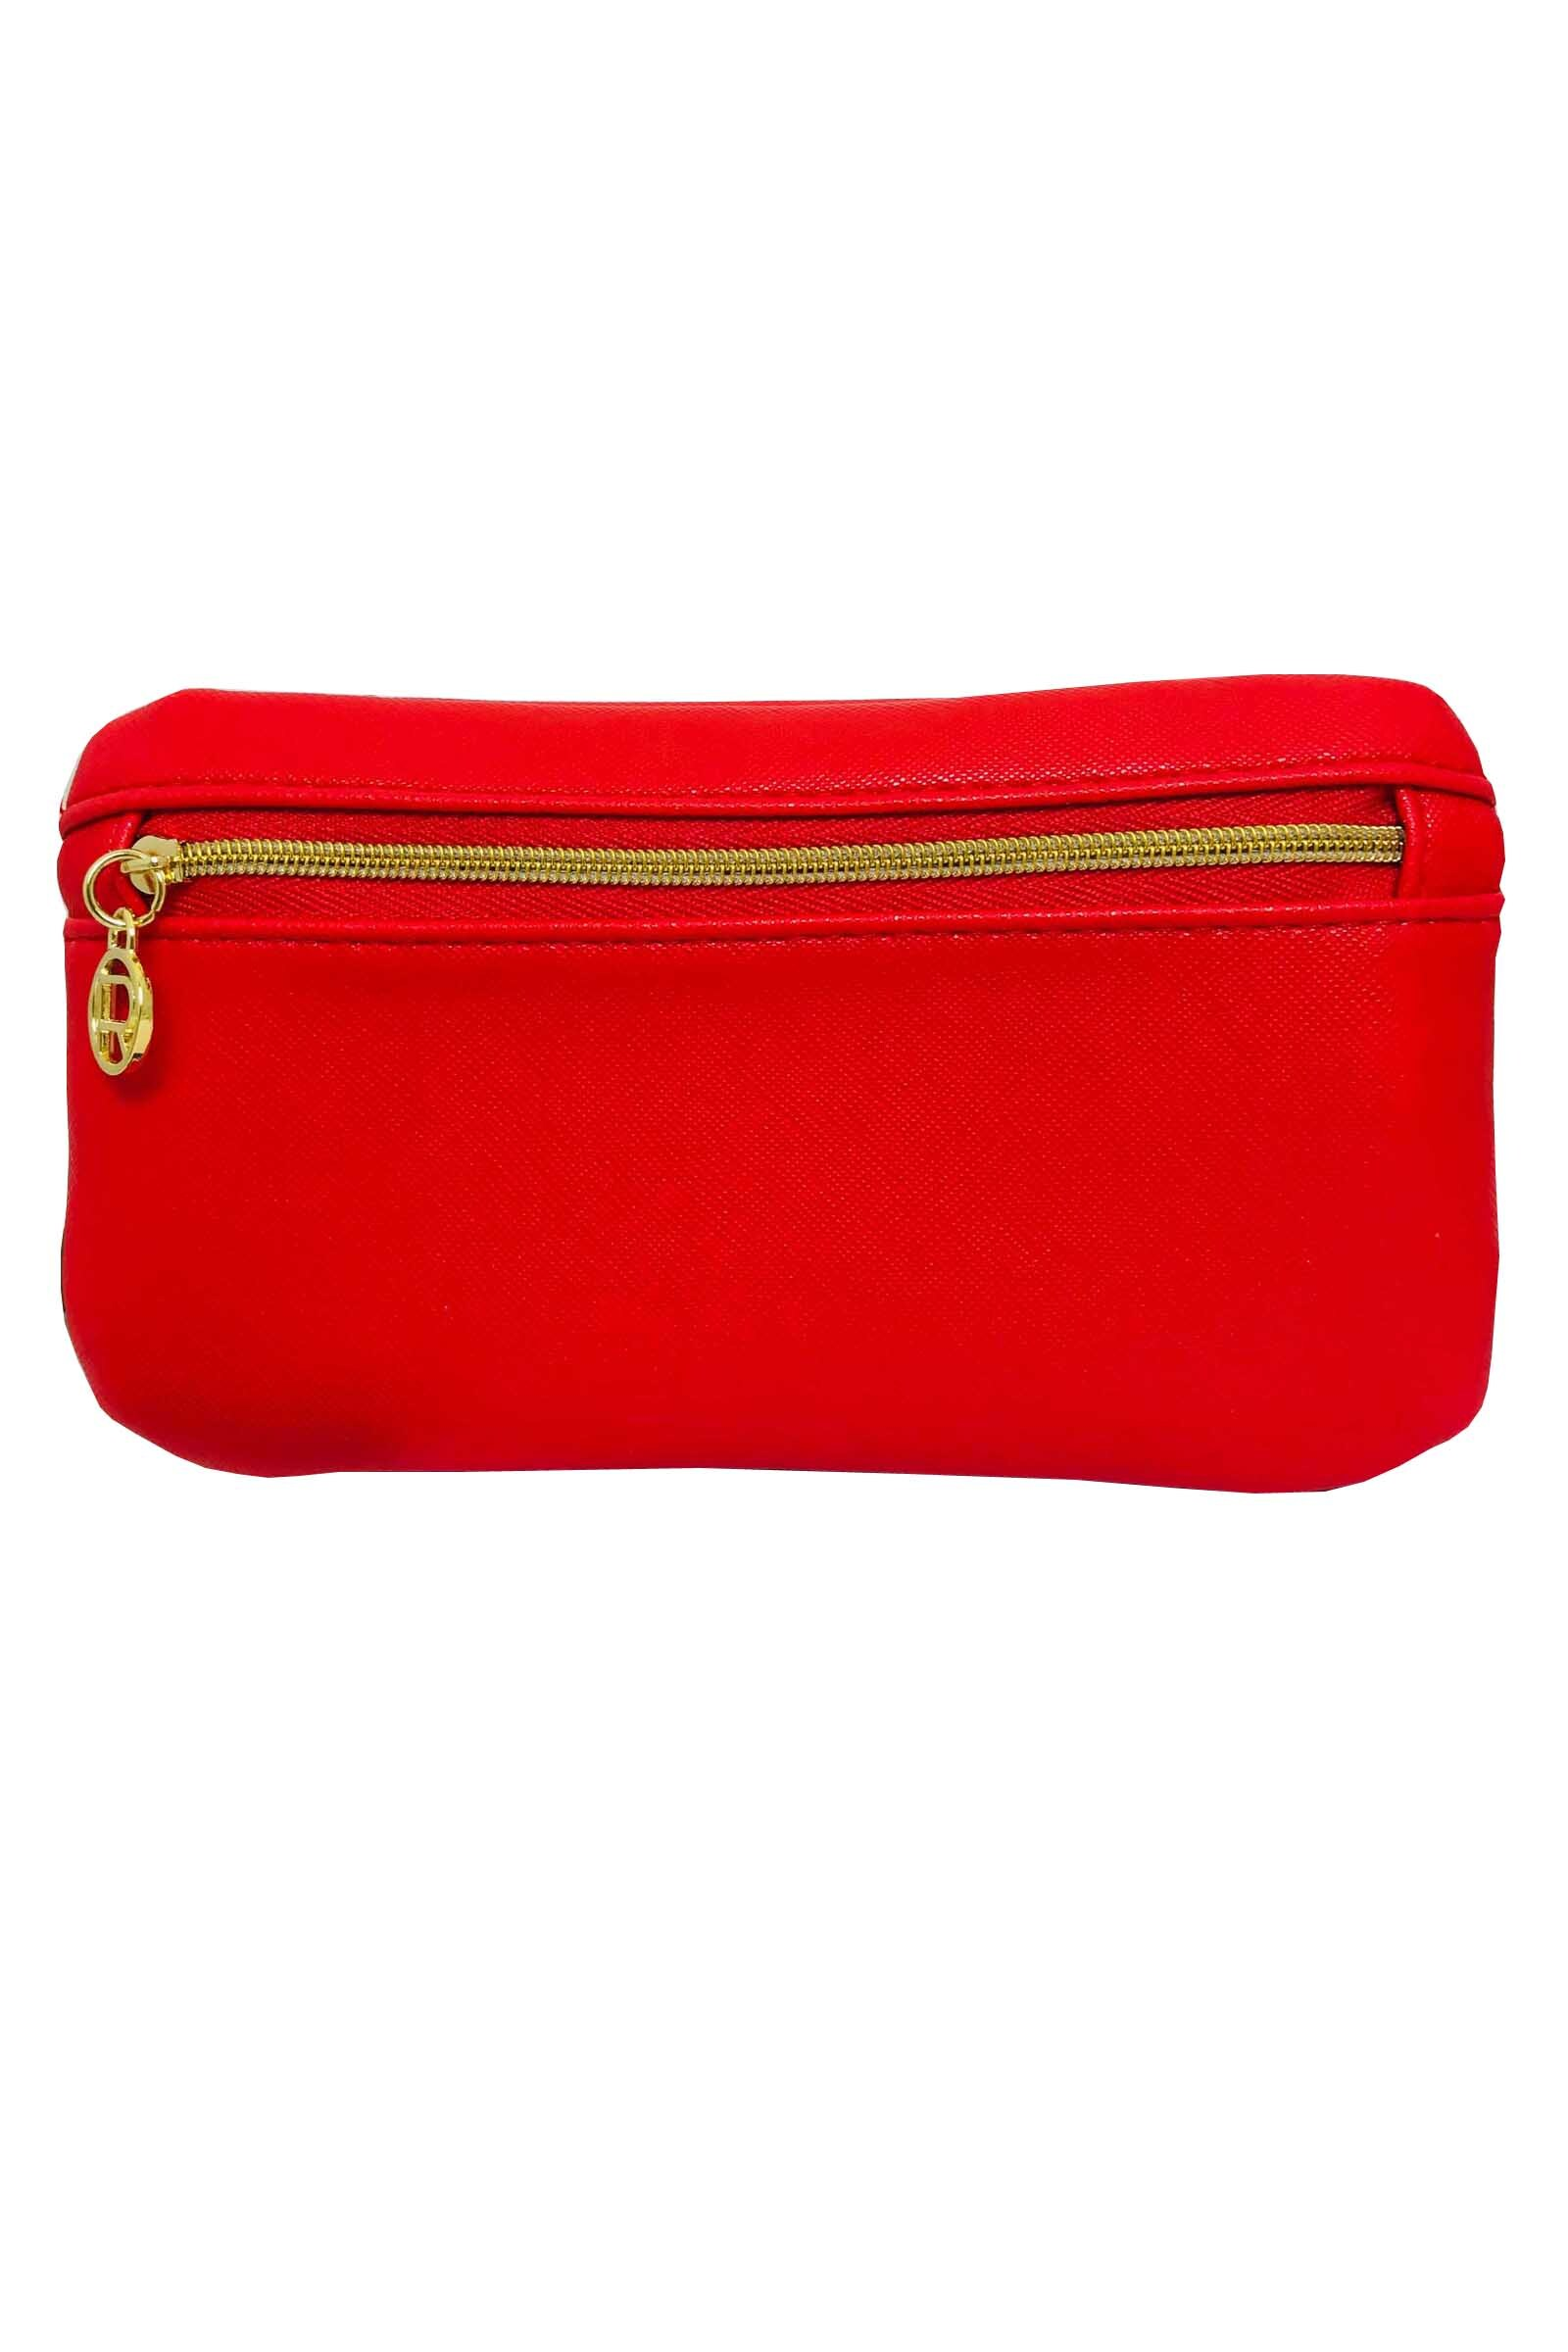 L Oreal Make Up Pouch Small Red